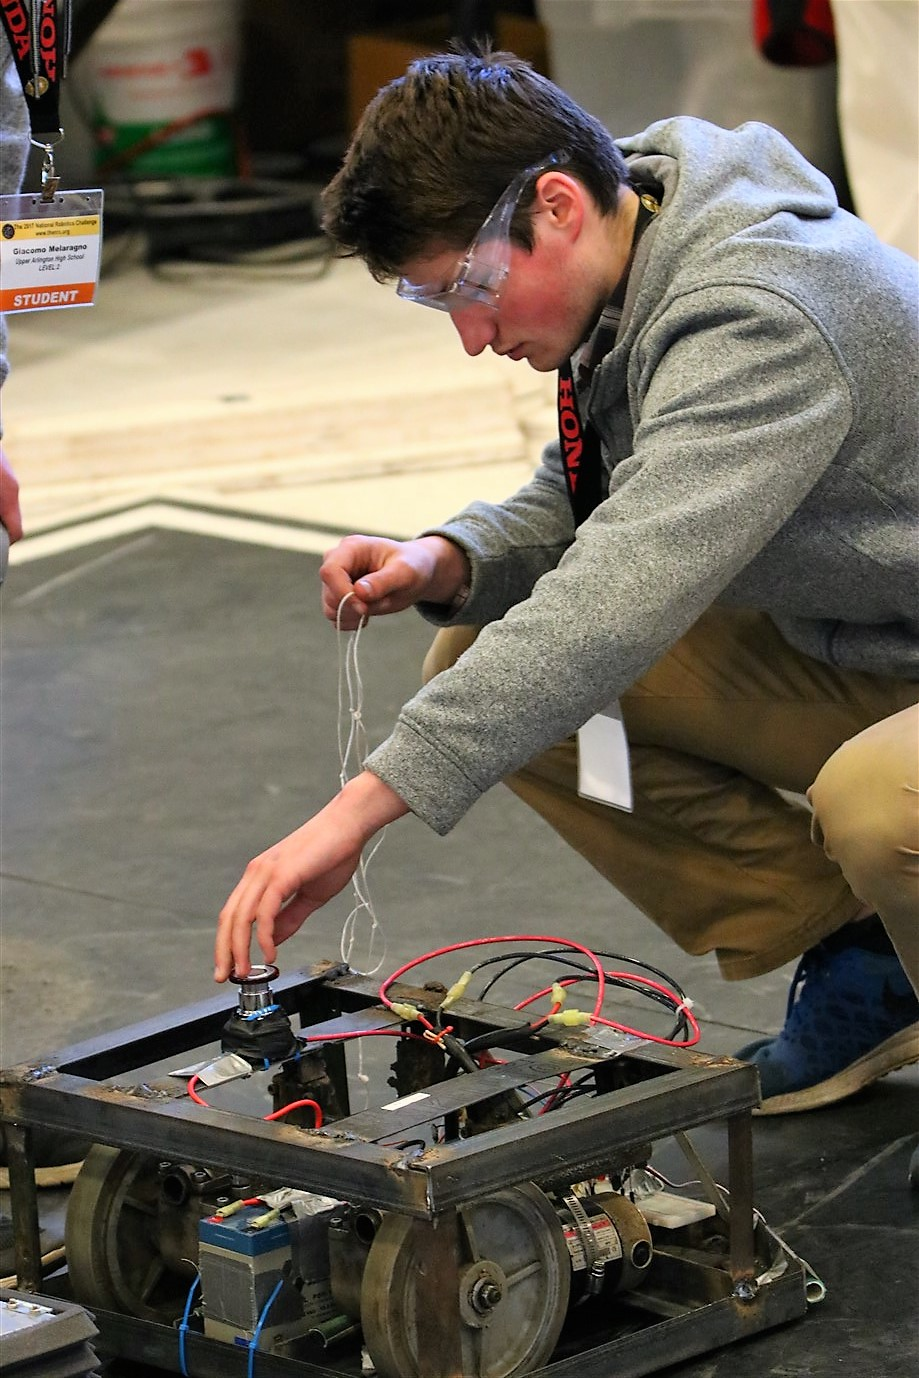 2017 04 08 15 Marion OH Robotics Competition.jpg